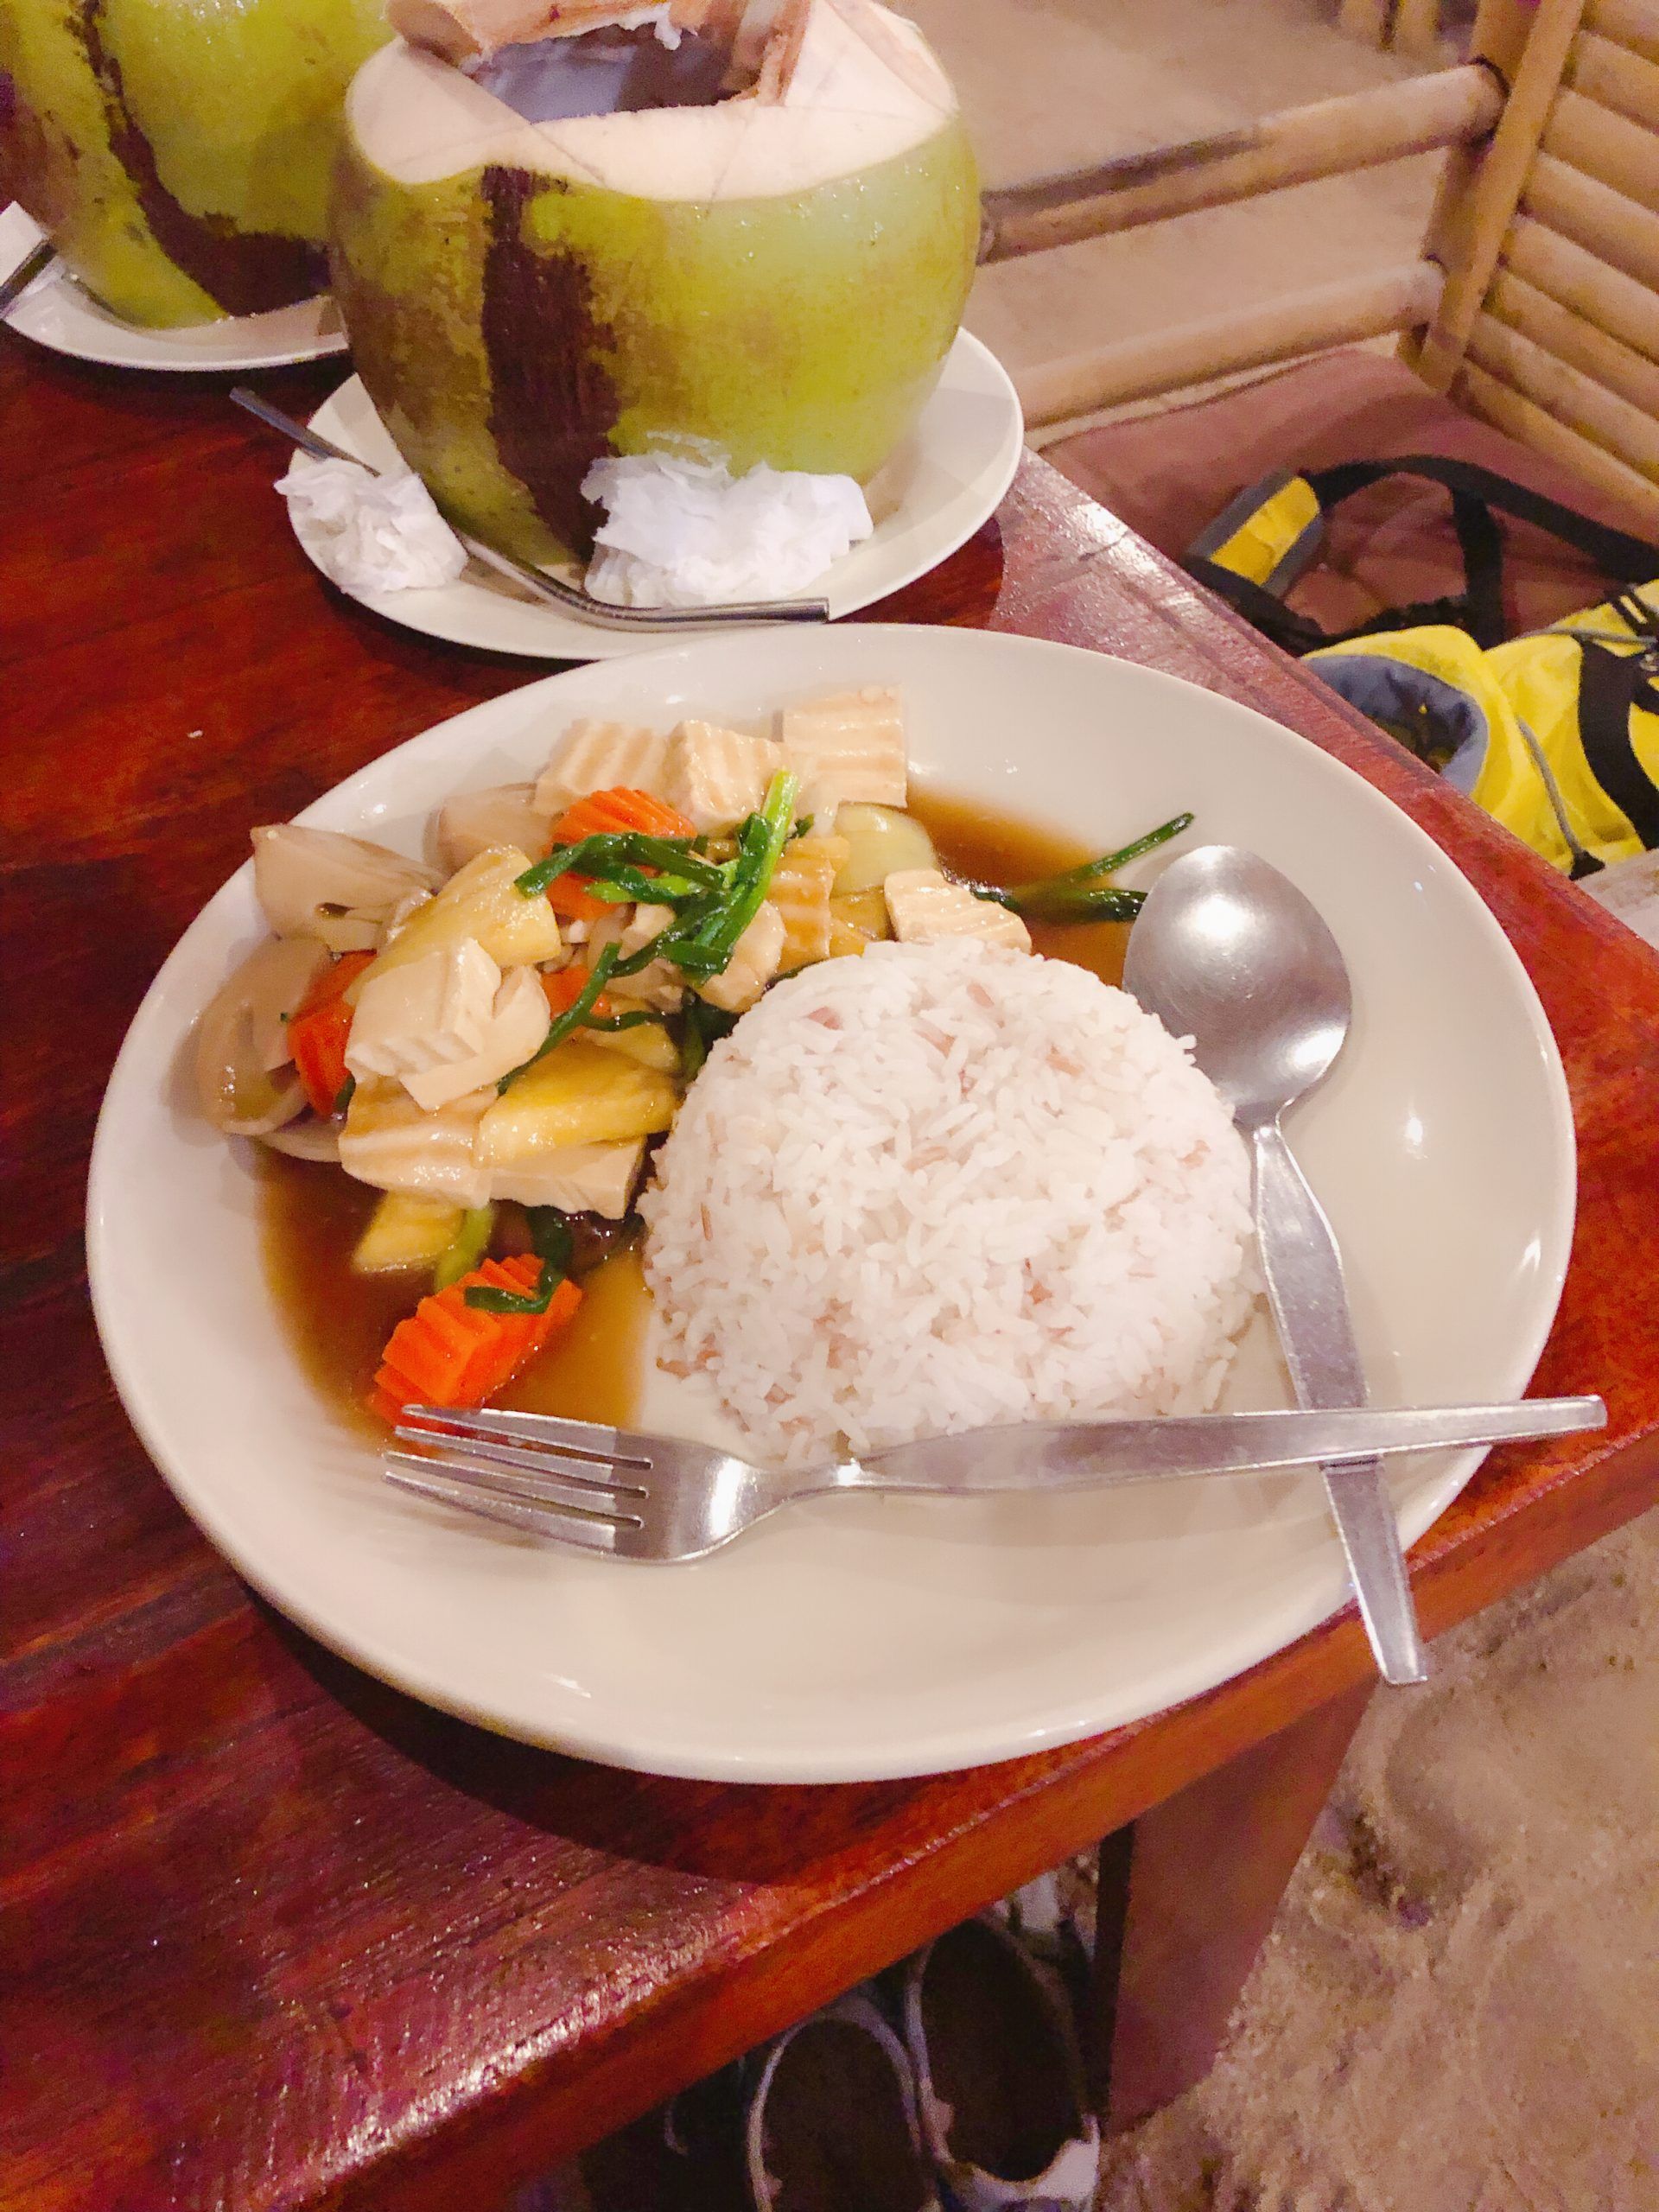 Blog: Vegan for a month in Thailand